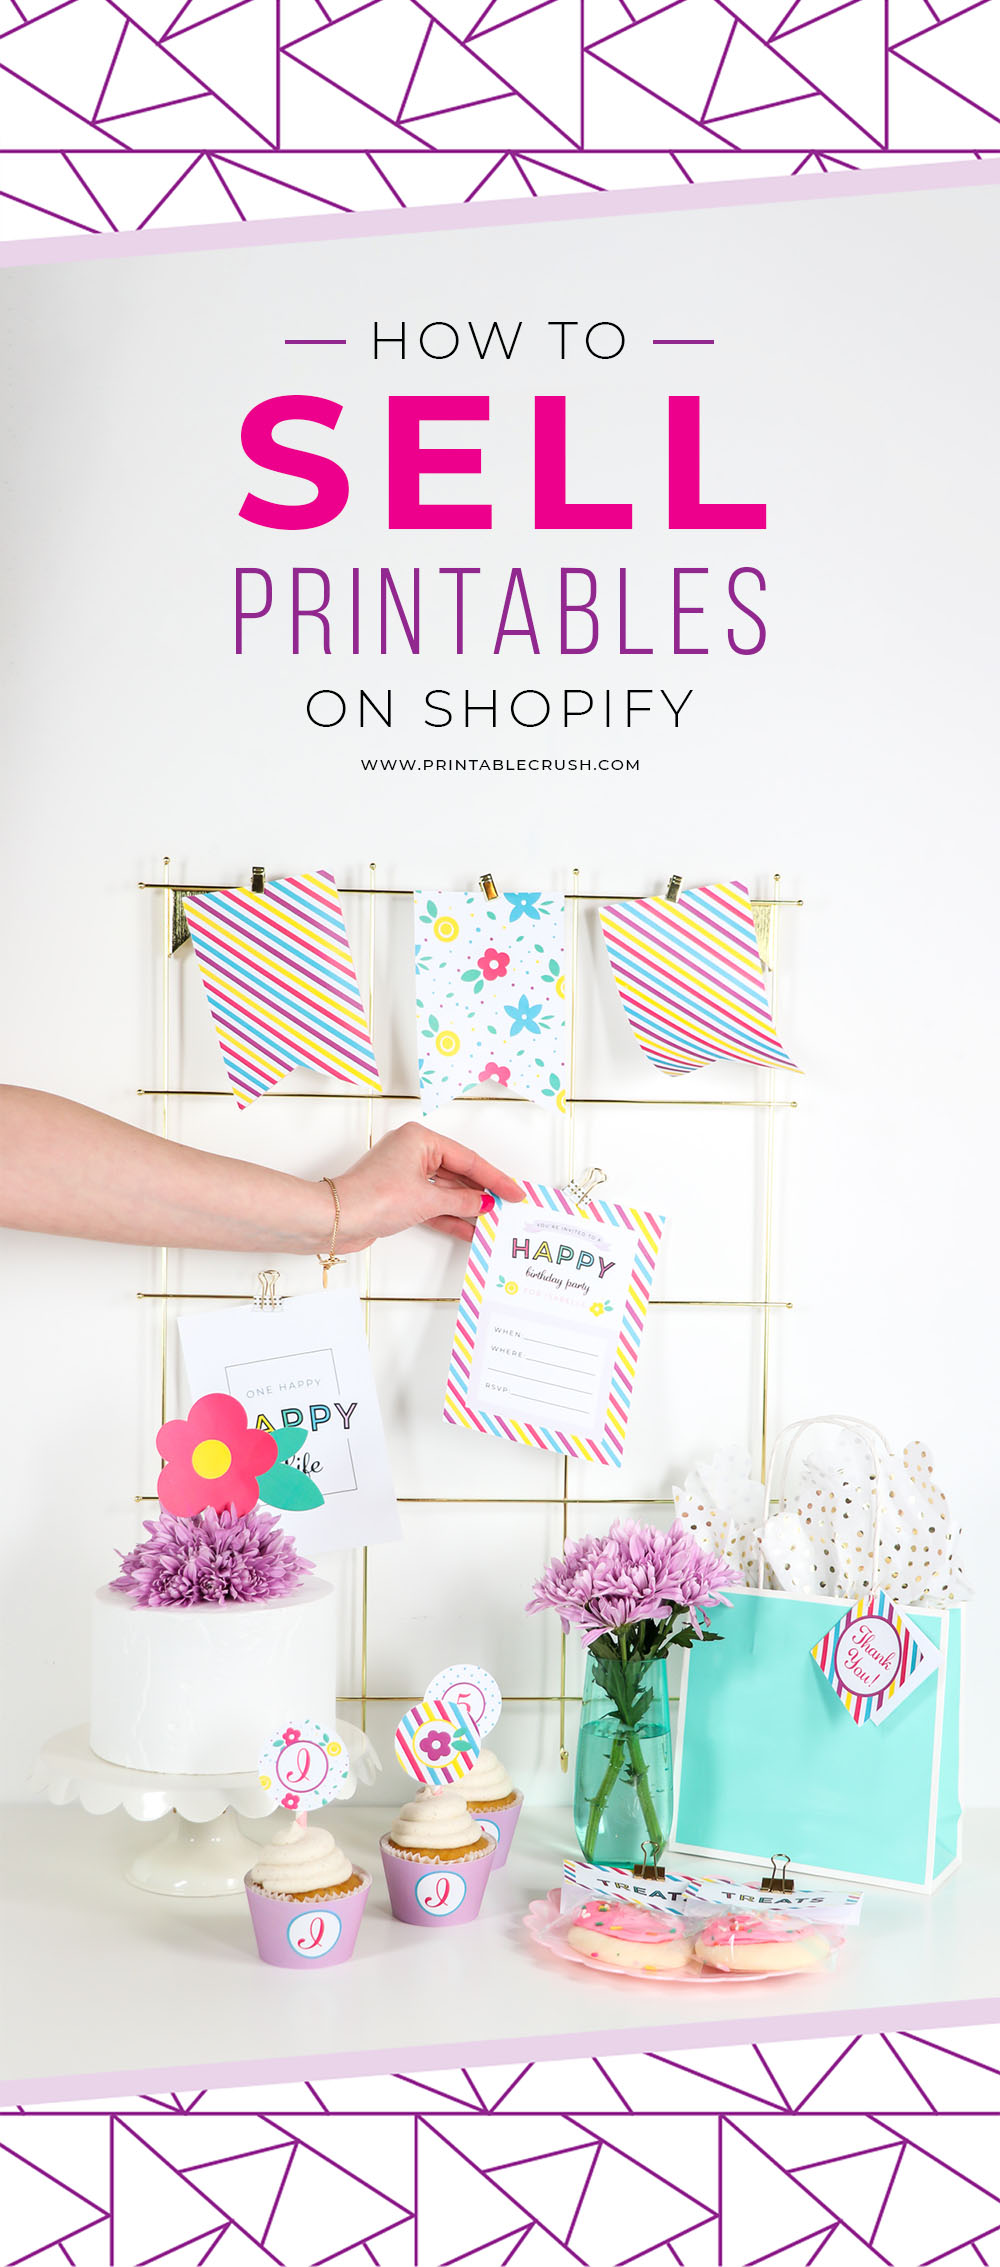 Create your printables in Adobe Illustrator then learn how to sell printables on Shopify to earn extra cash!